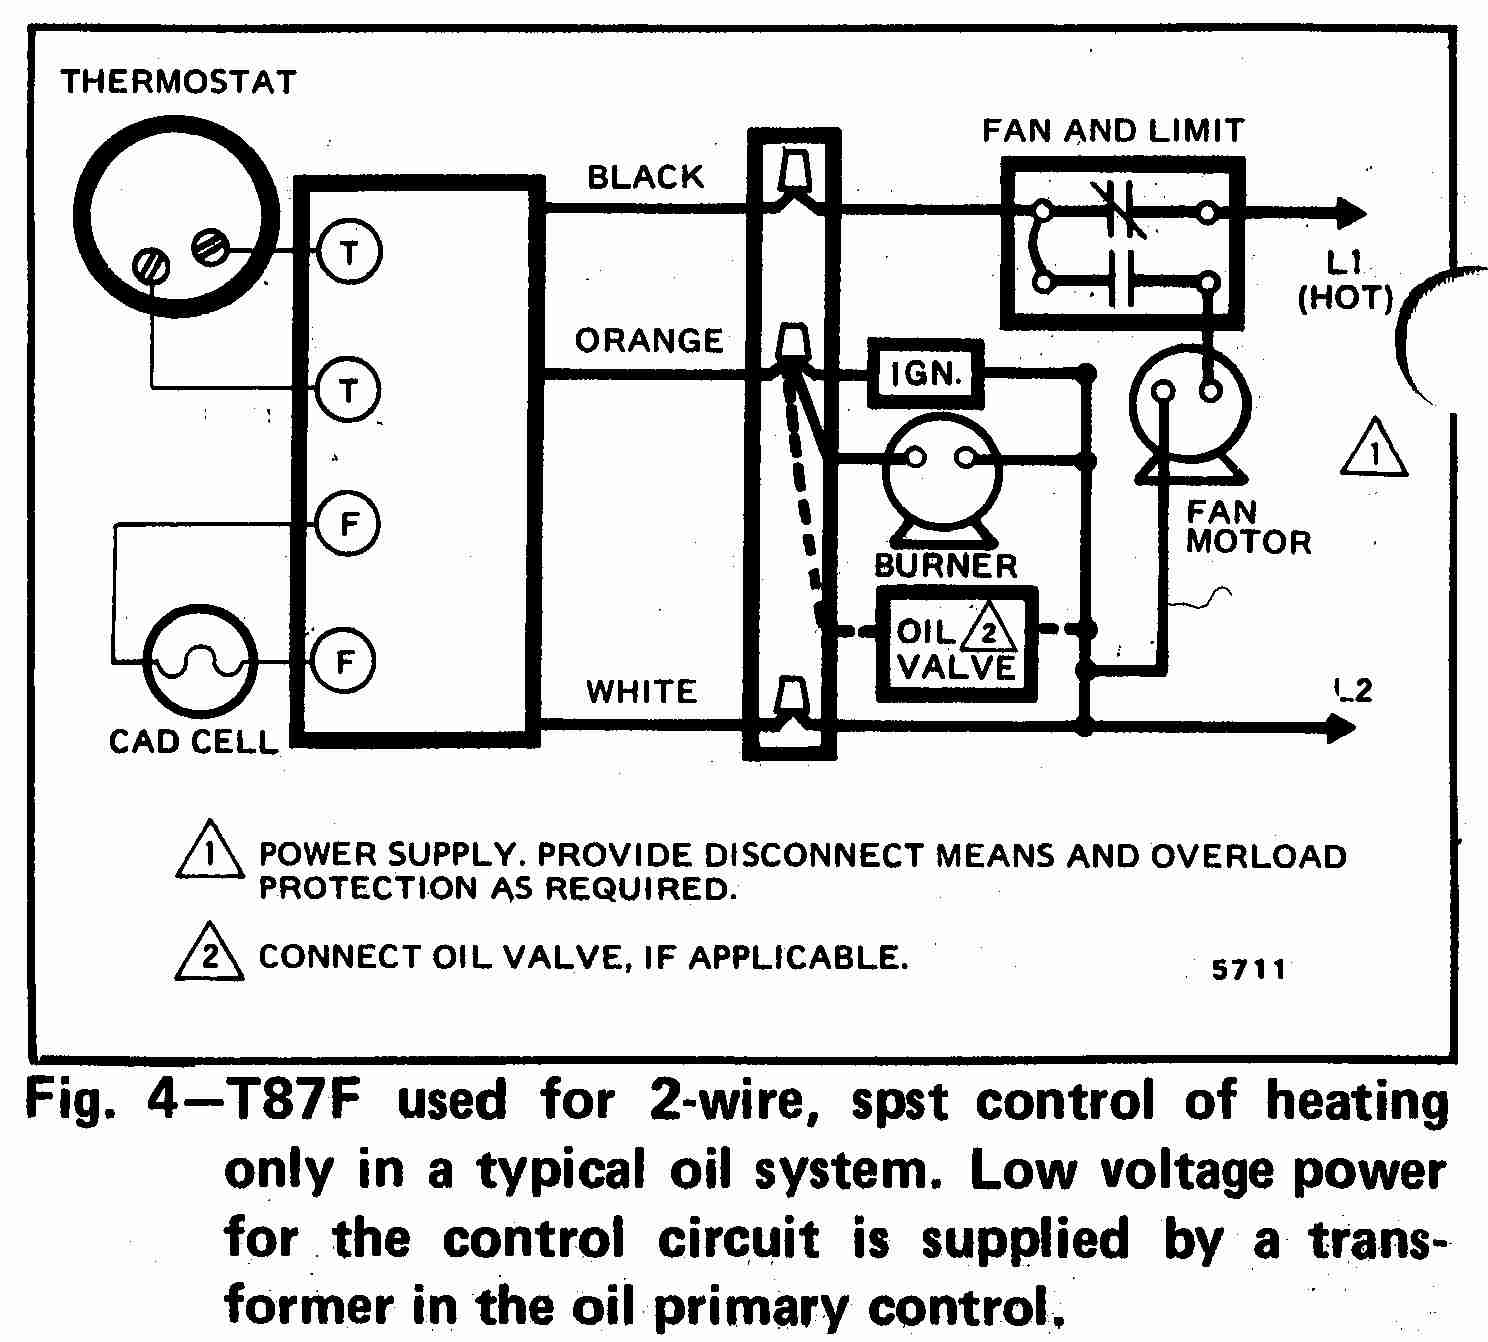 room thermostat wiring diagrams for hvac systems rh inspectapedia com wiring diagram baseboard heater thermostat wiring diagram baseboard heater thermostat